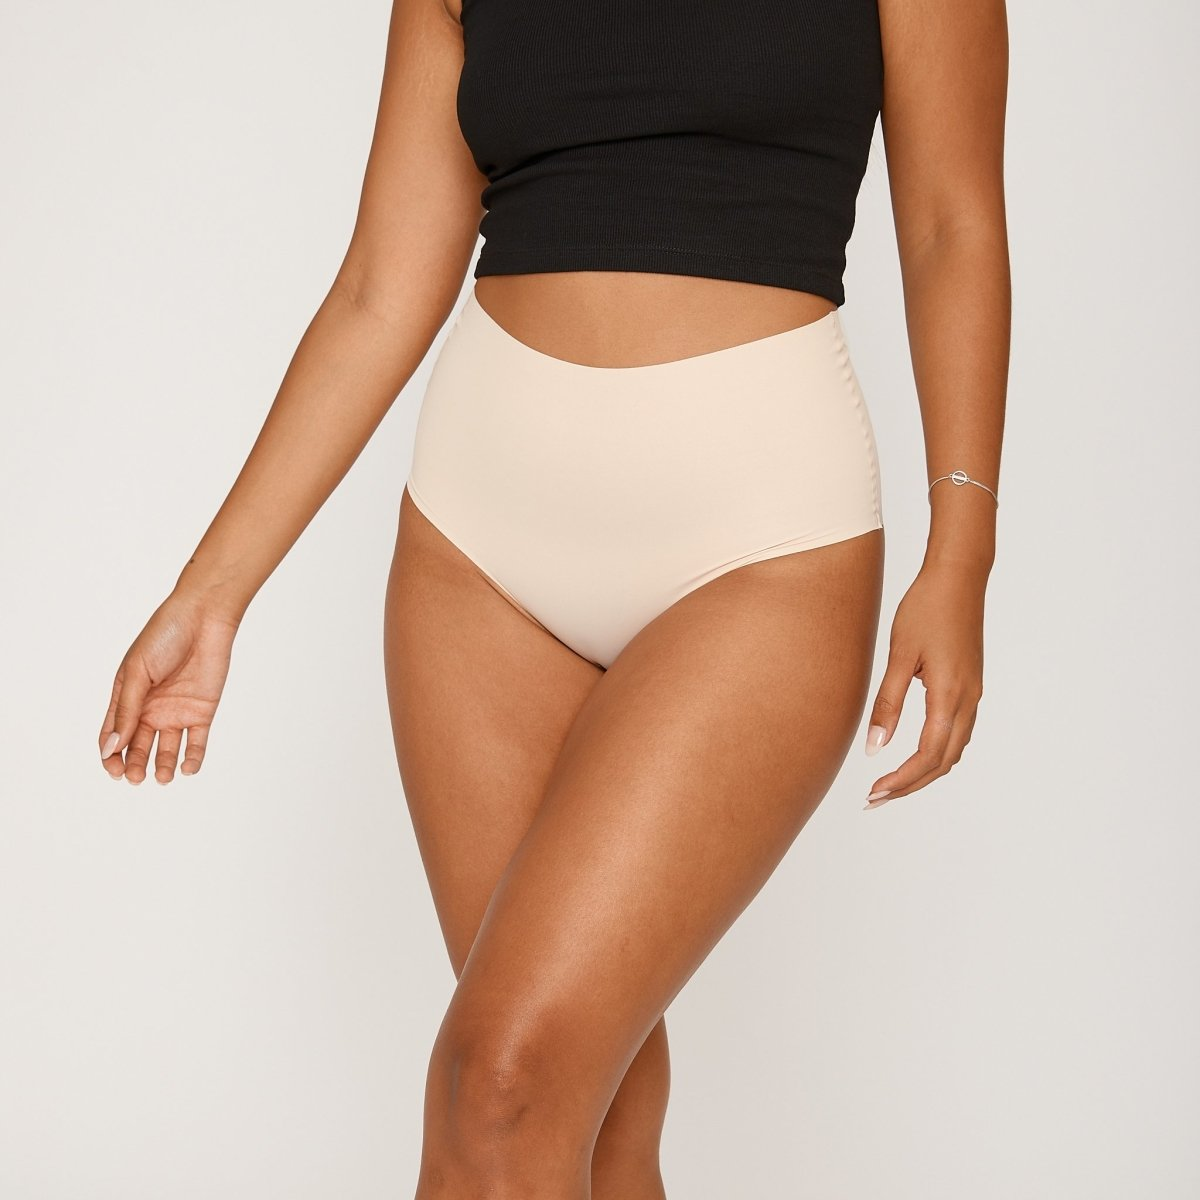 High-Rise Cheeky - Buttermilk - Peach Underwear